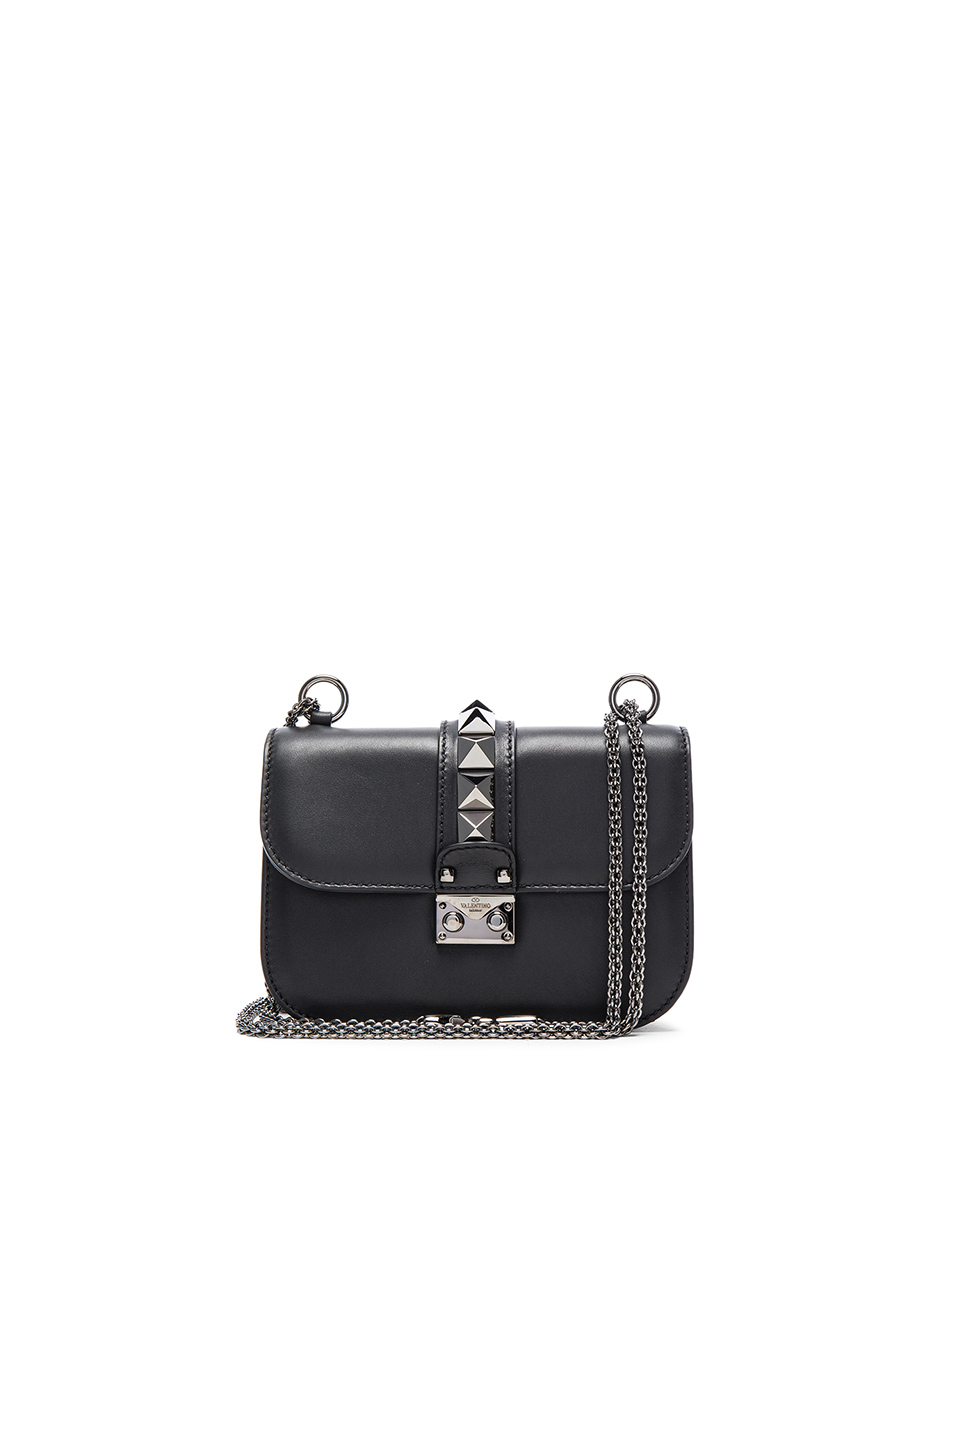 24915e81bc5 Valentino Rockstud - Small Lock Leather Crossbody Bag - Black | ModeSens